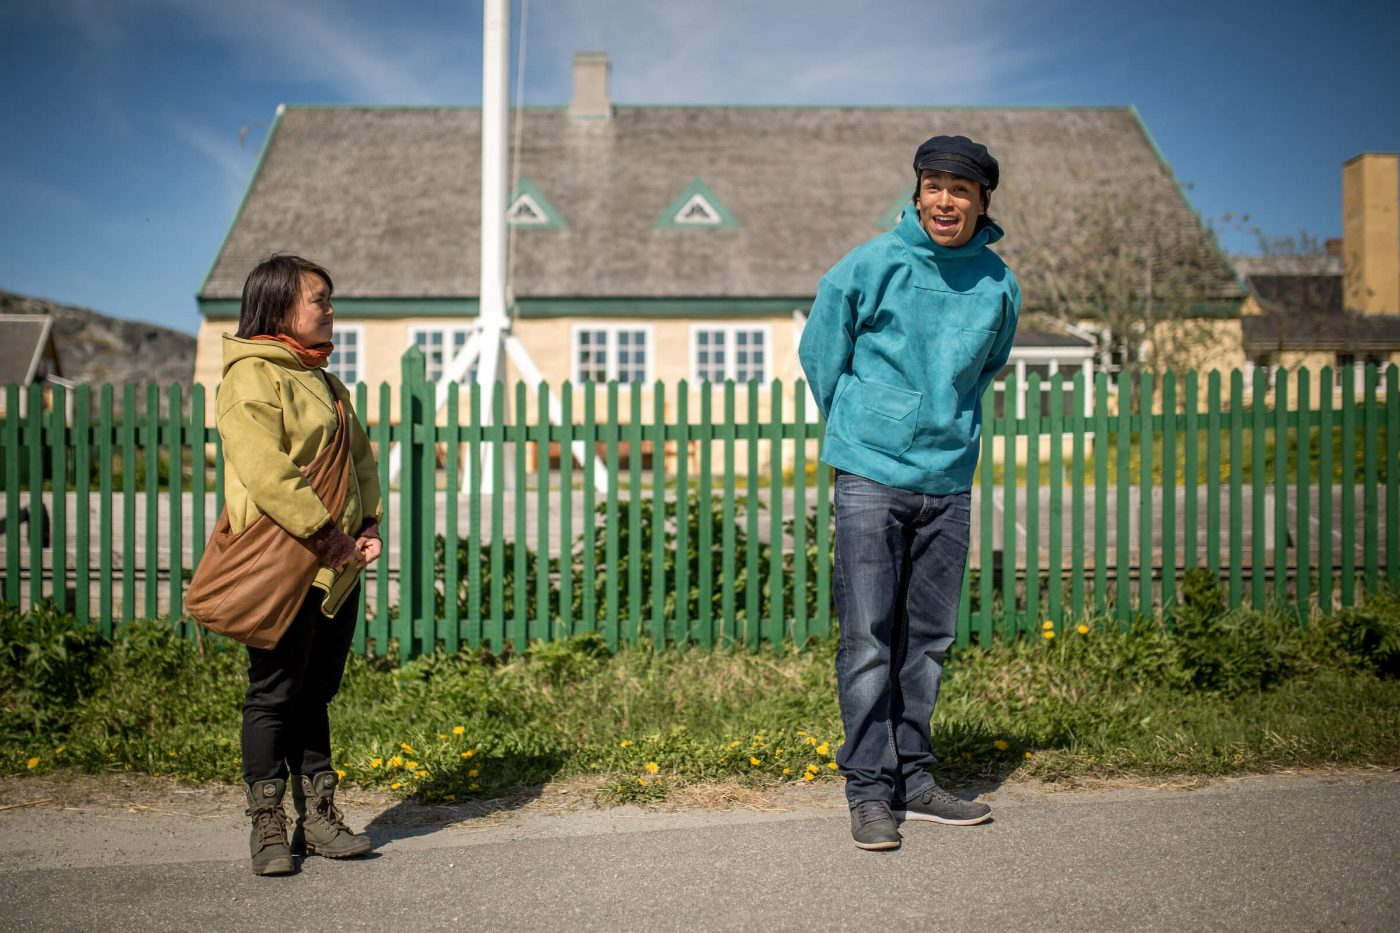 Two actors recreating historical events in the old colonial part of Nuuk in Greenland